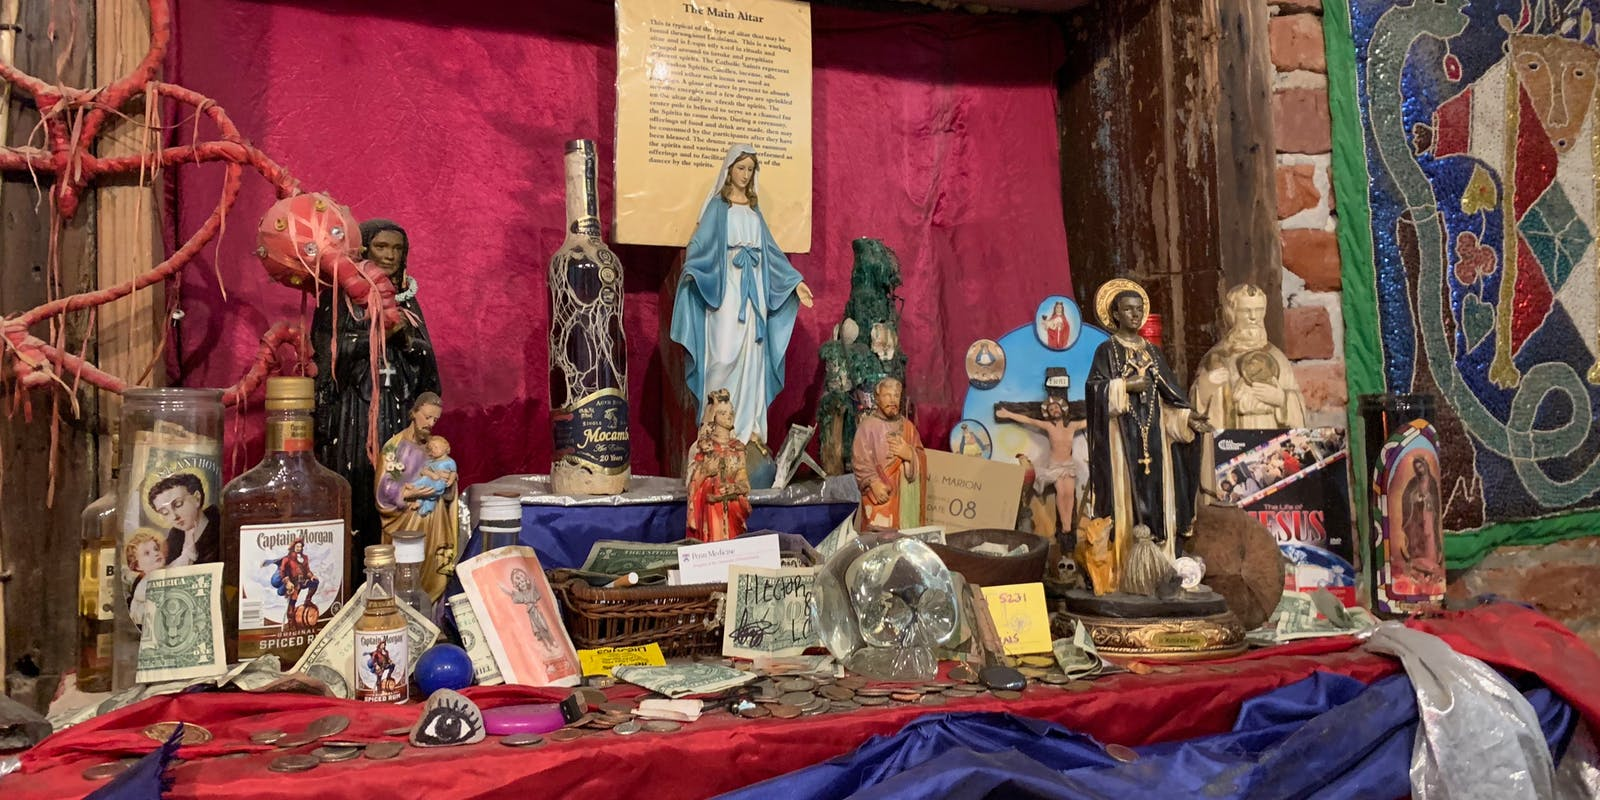 An altar in the voodoo museum.